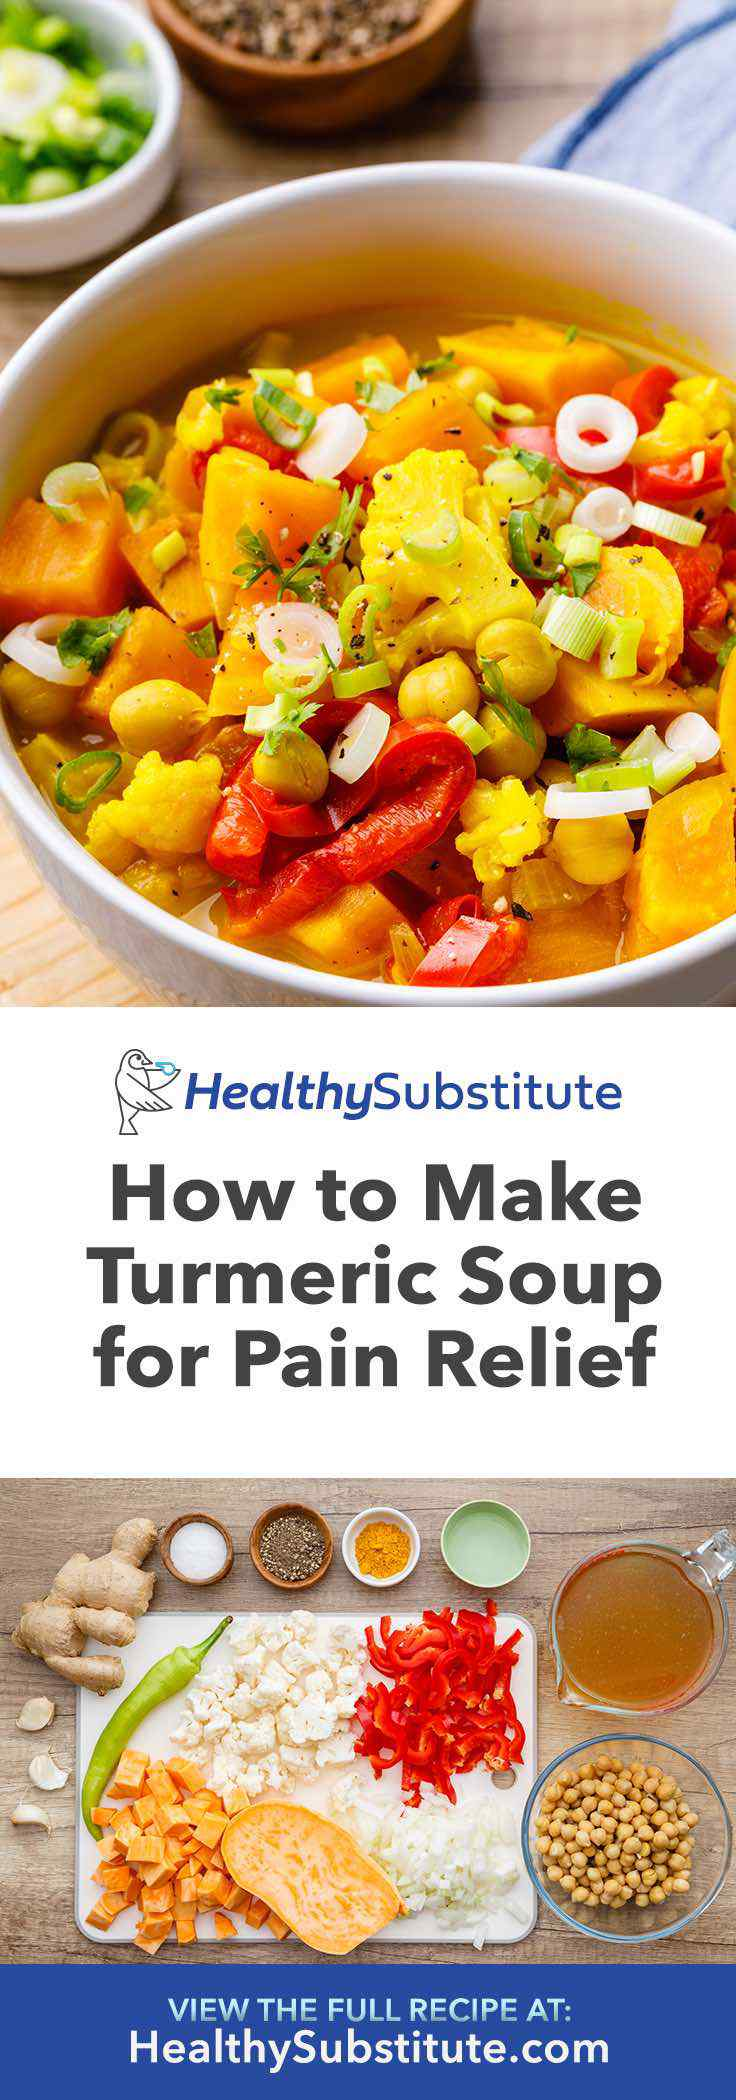 Make this anti-inflammatory turmeric curcumin soup for pain relief.